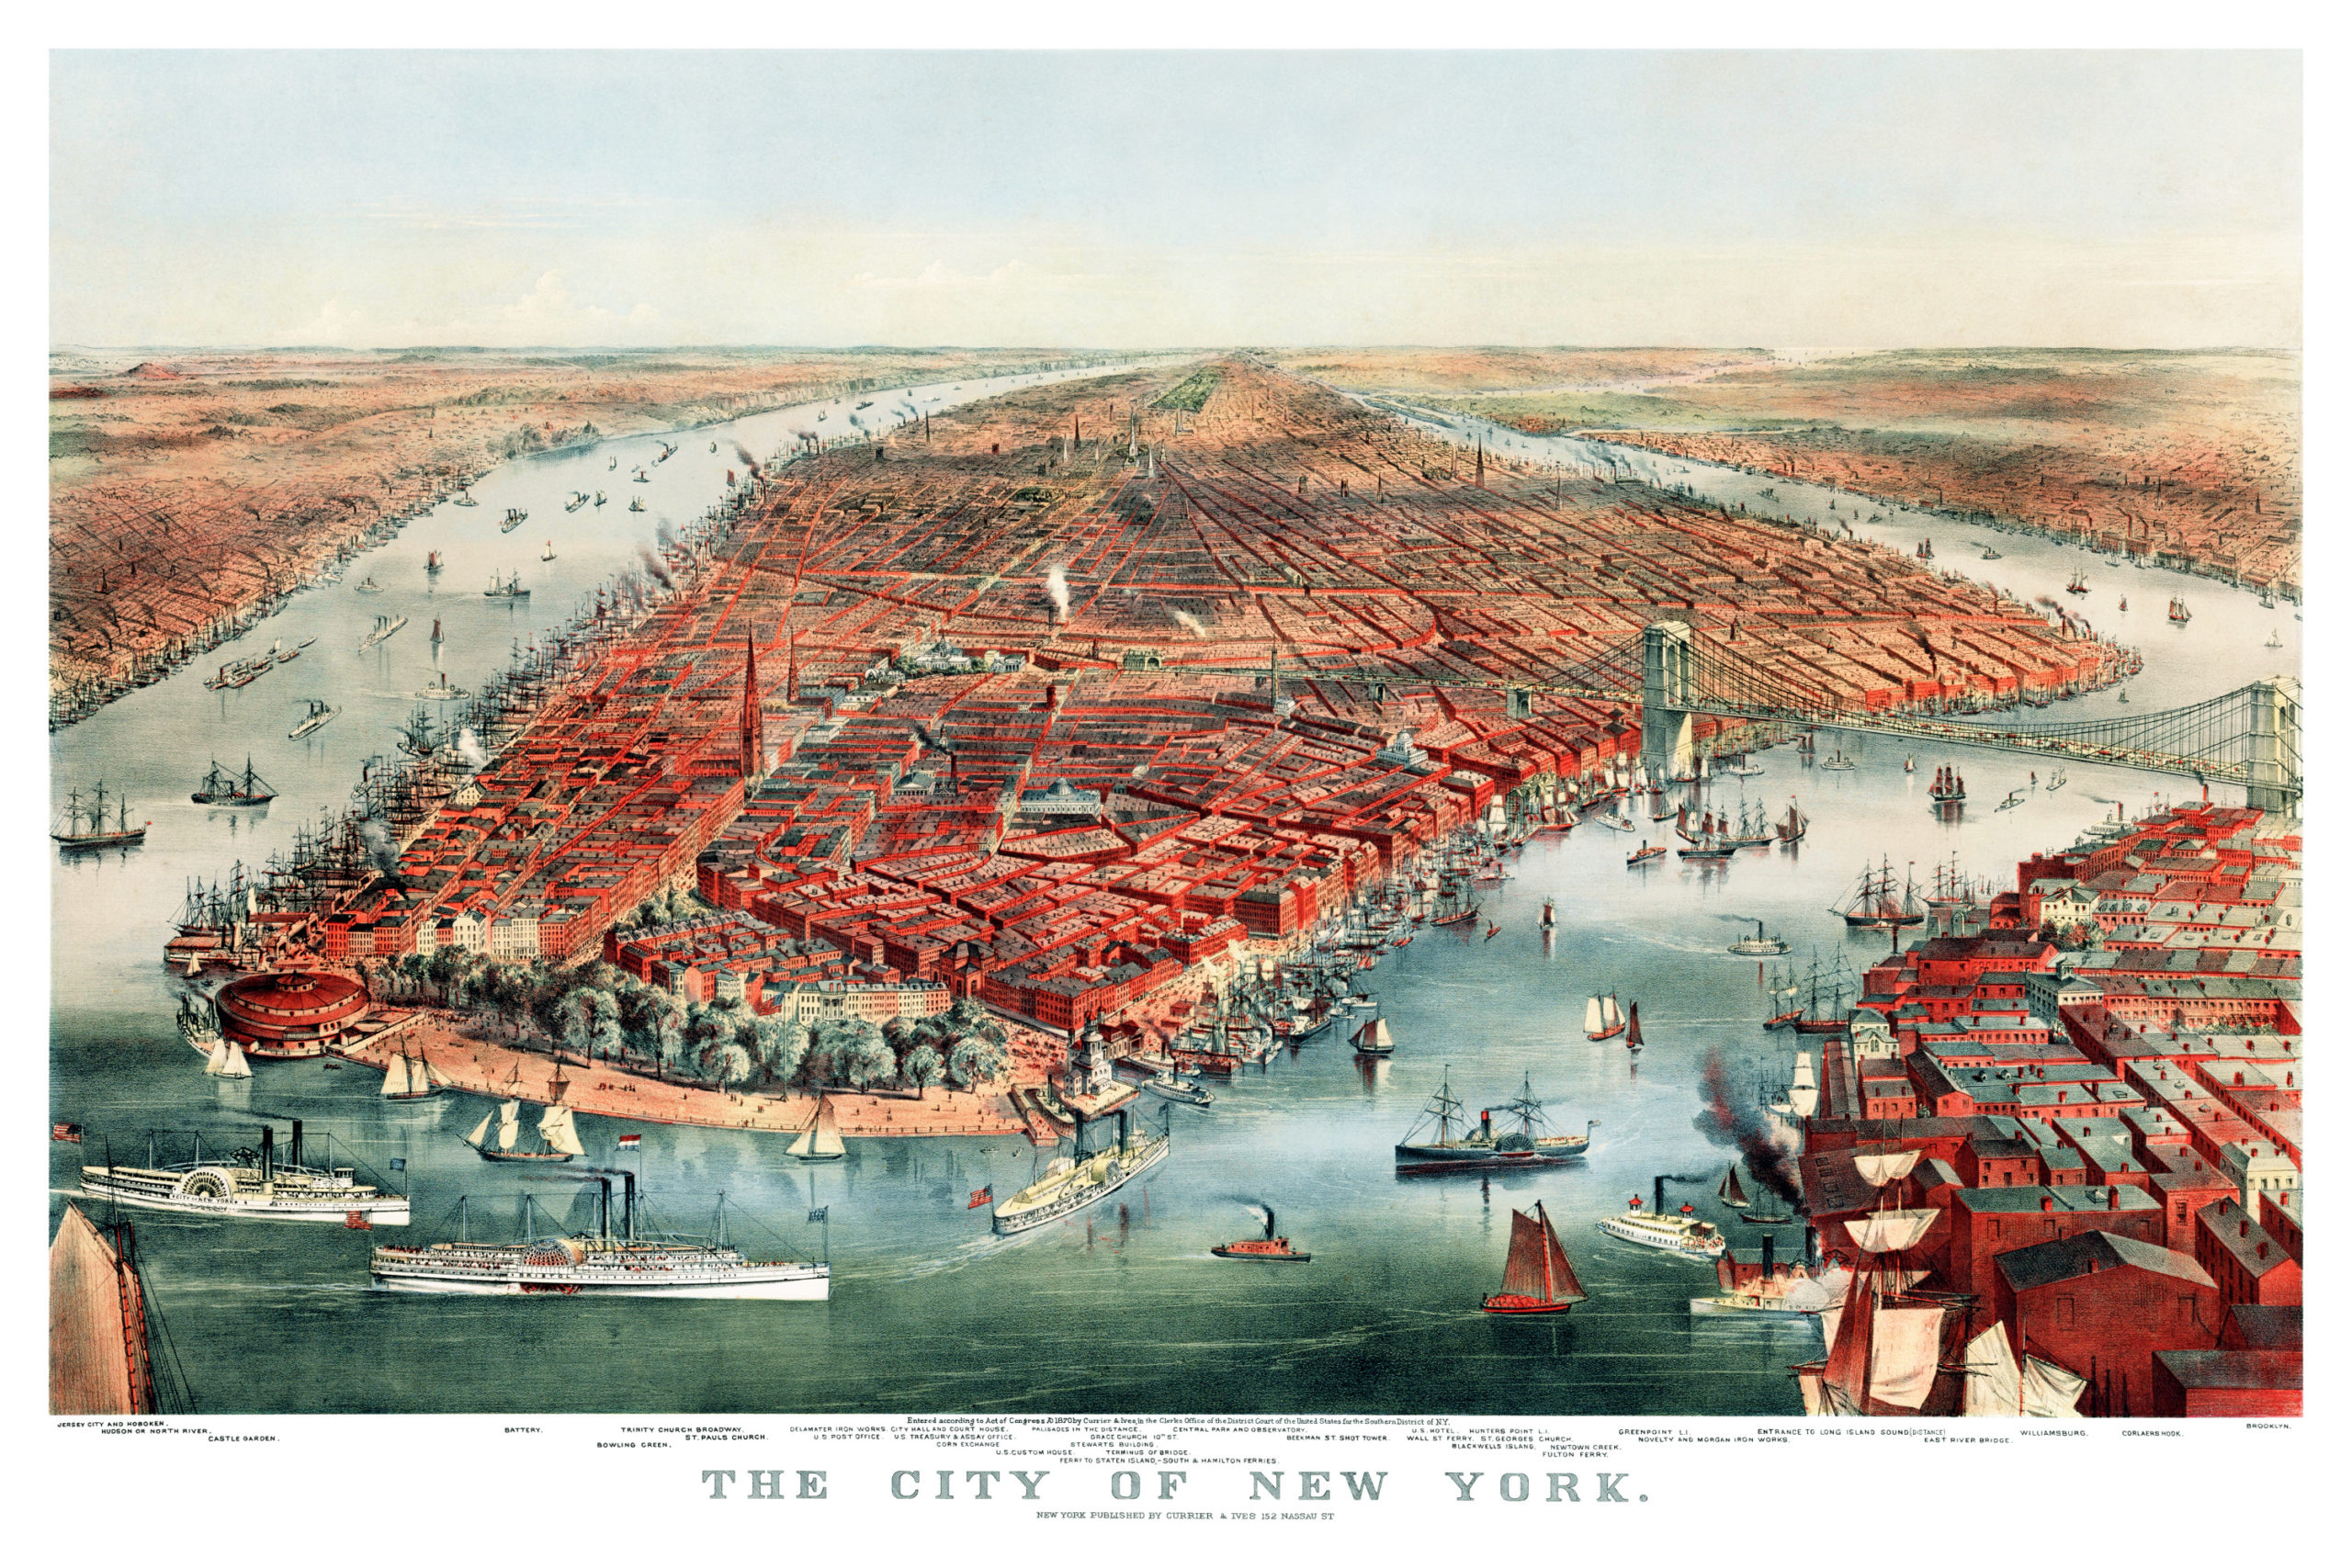 Detailed Map Of New York City.Beautifully Detailed Map Of New York City From 1870 Knowol